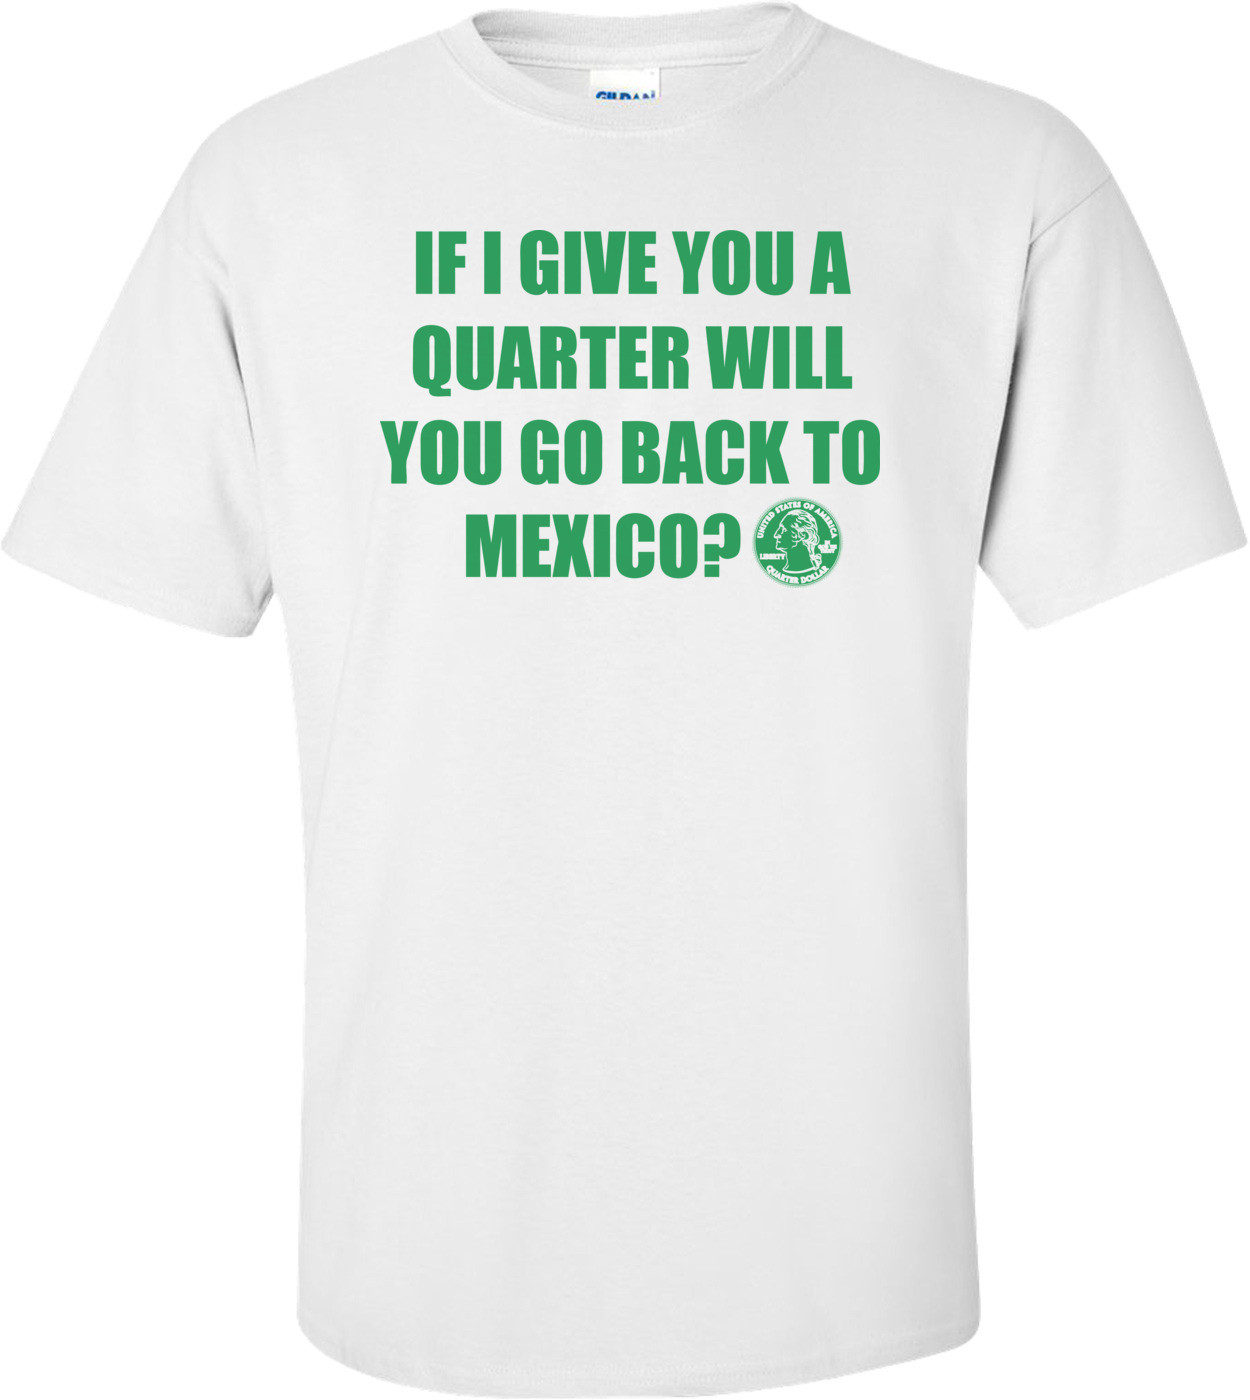 If I Give You A Quarter Will You Go Back To Mexico T-shirt